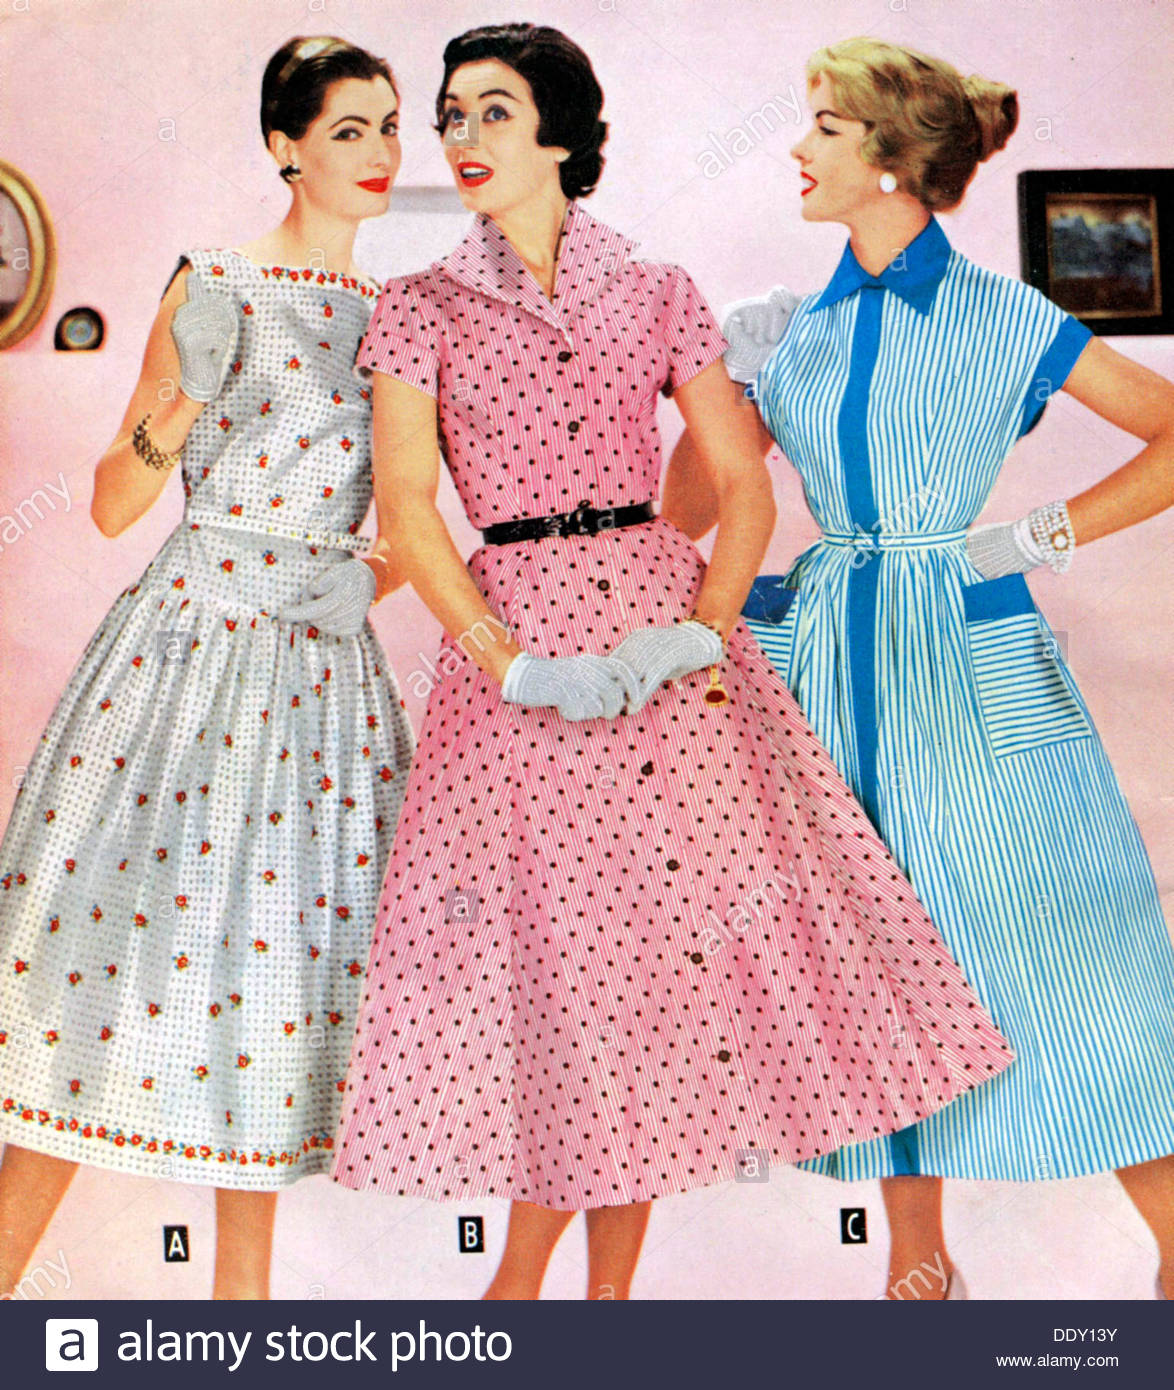 1950s clothing for women